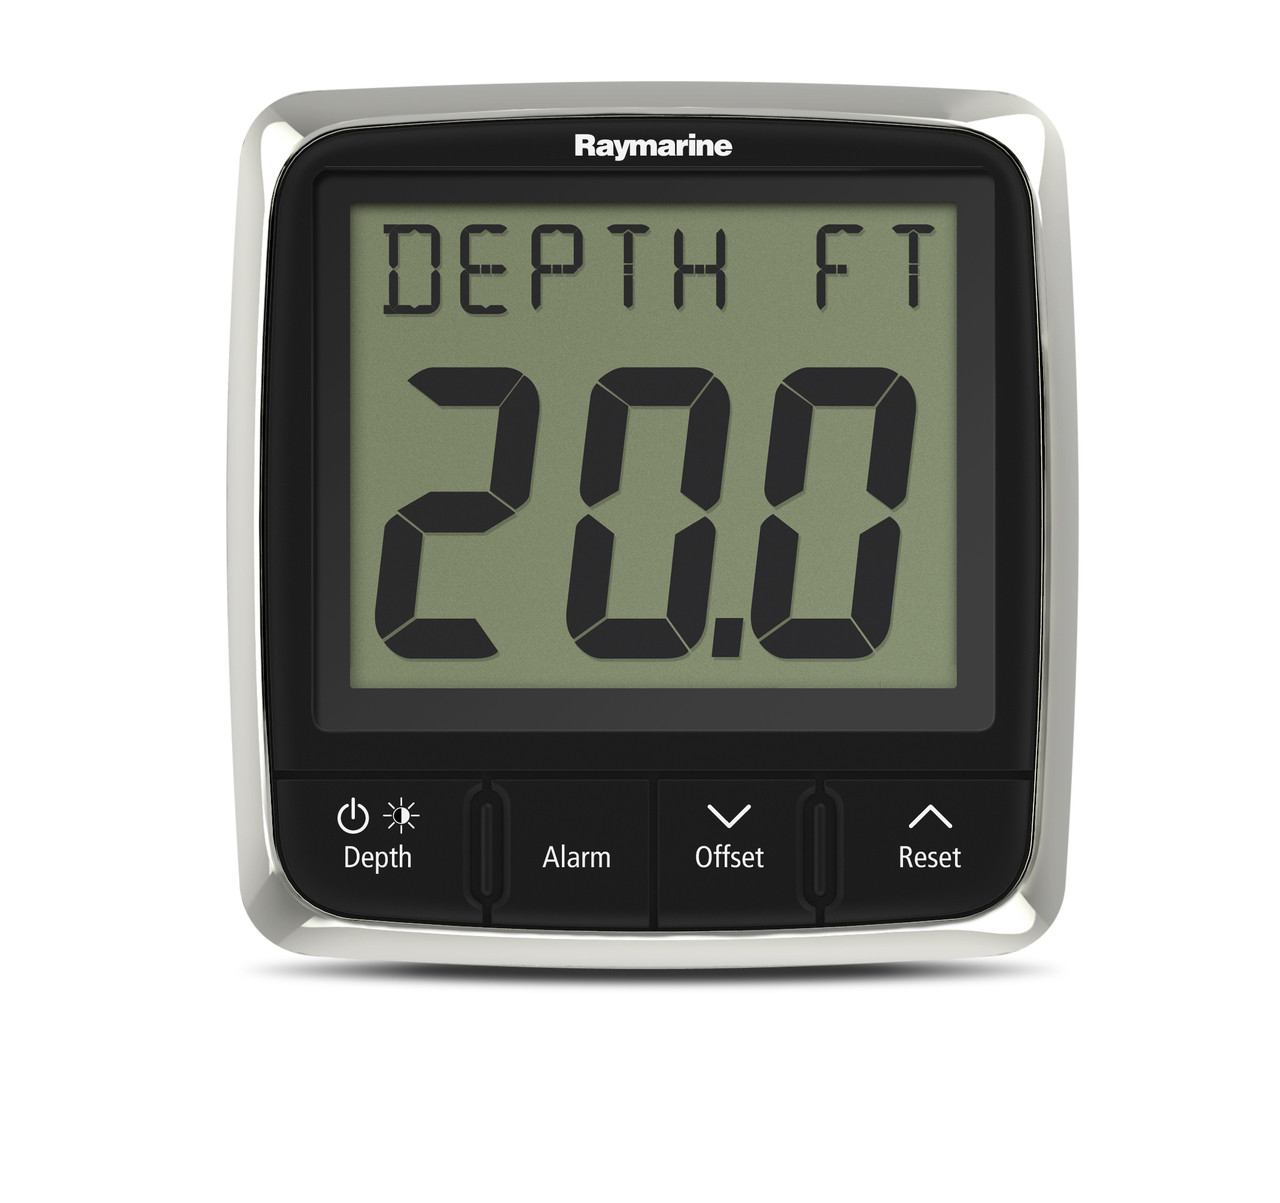 Raymarine i50 Depth Instrument Display Front View